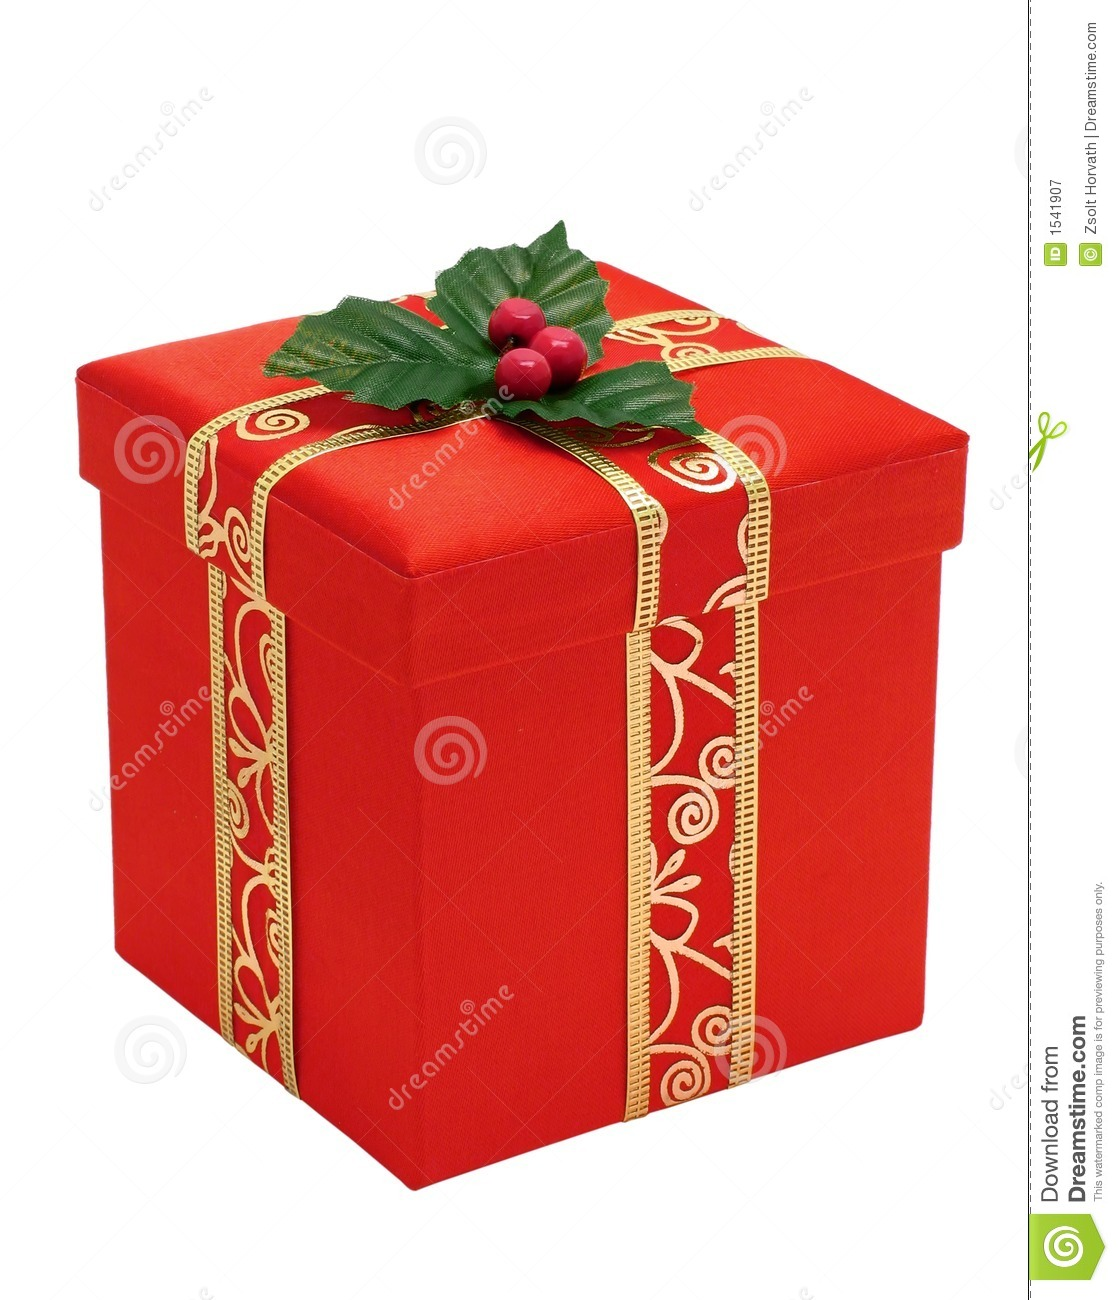 Christmas Gift Boxes With Lids.Red Christmas Gift Box With Gold Ribbon Stock Image Image